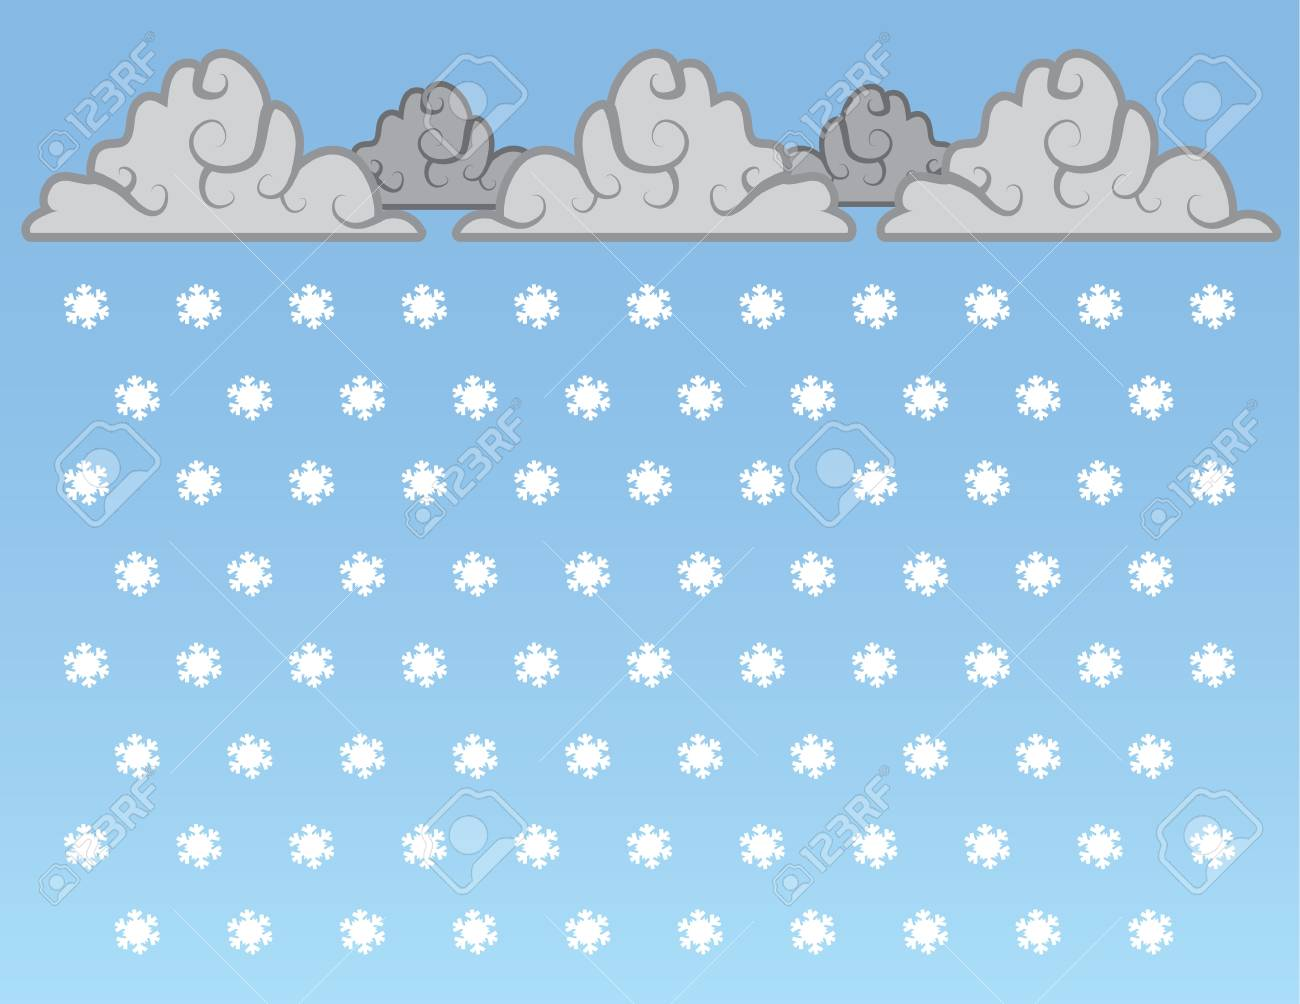 Snowflakes falling from clouds in the sky Stock Vector - 15178899